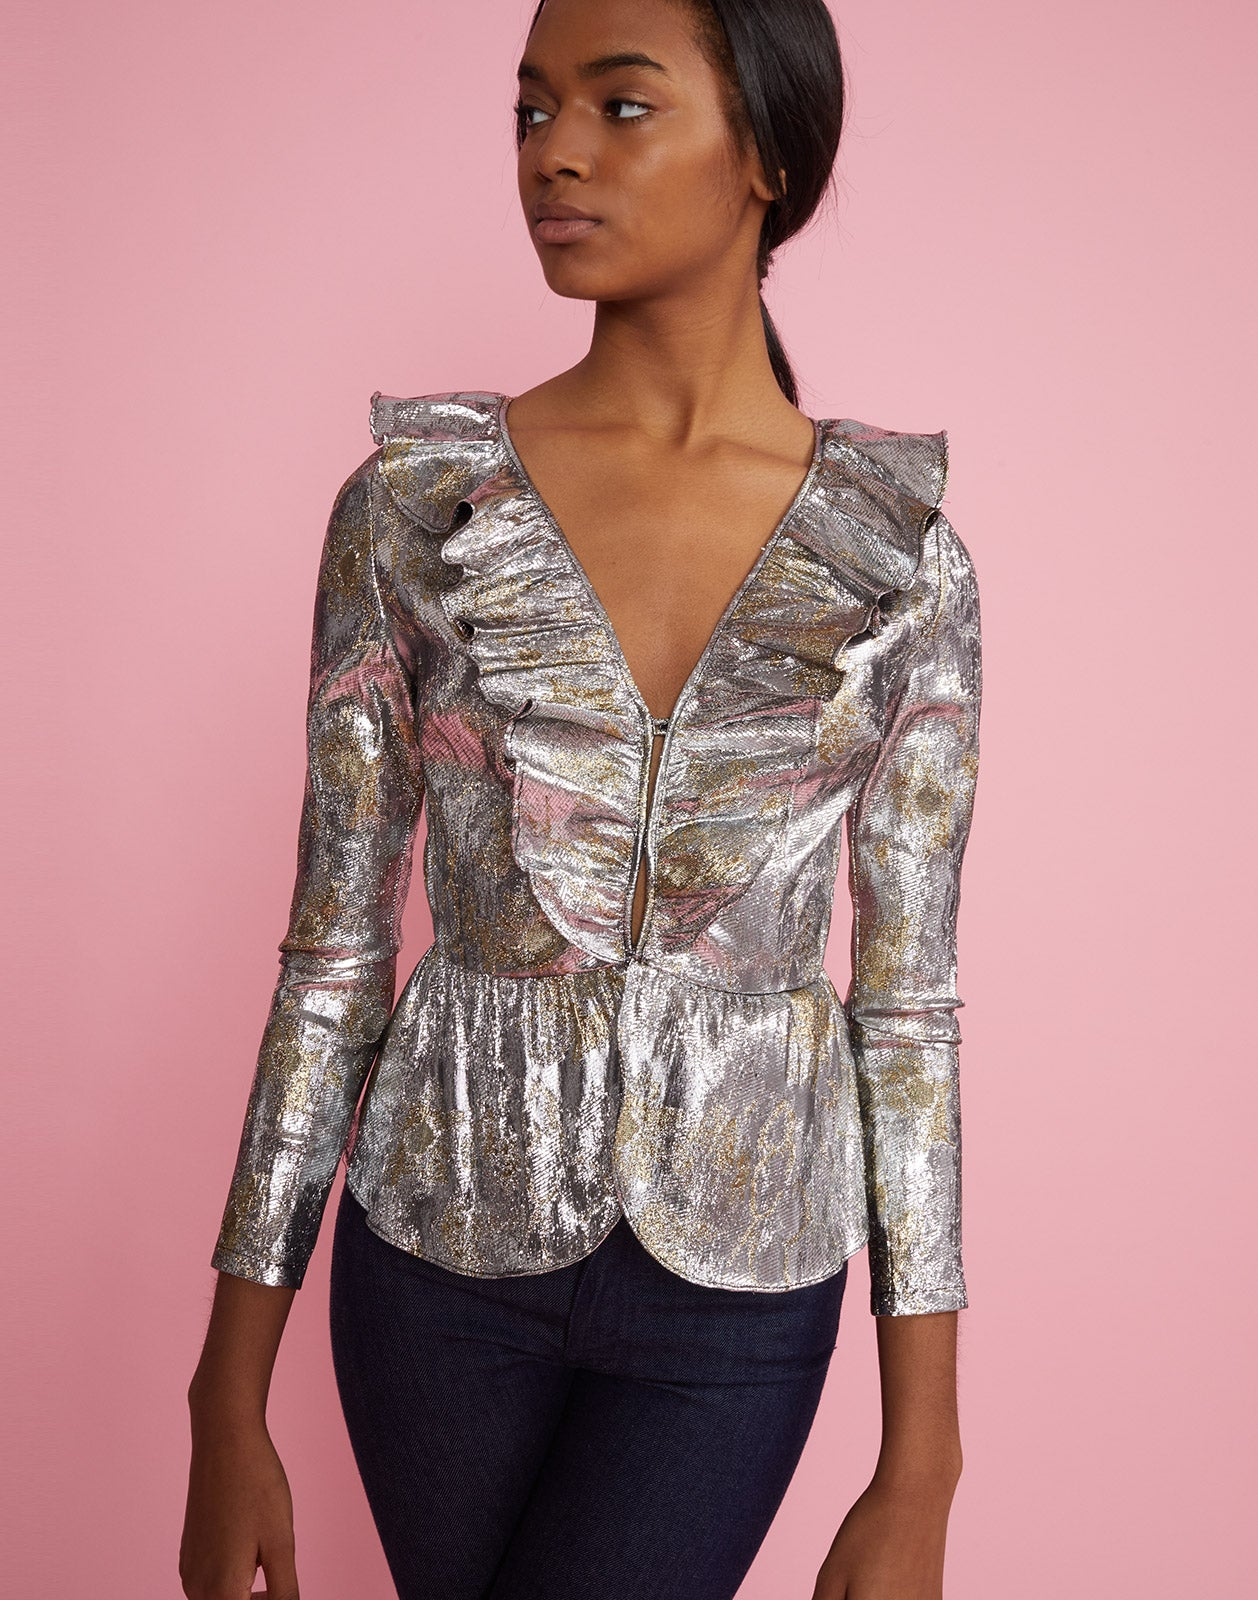 Front view of model wearing Gold Coast Metallic Brocade Ruffle Top.